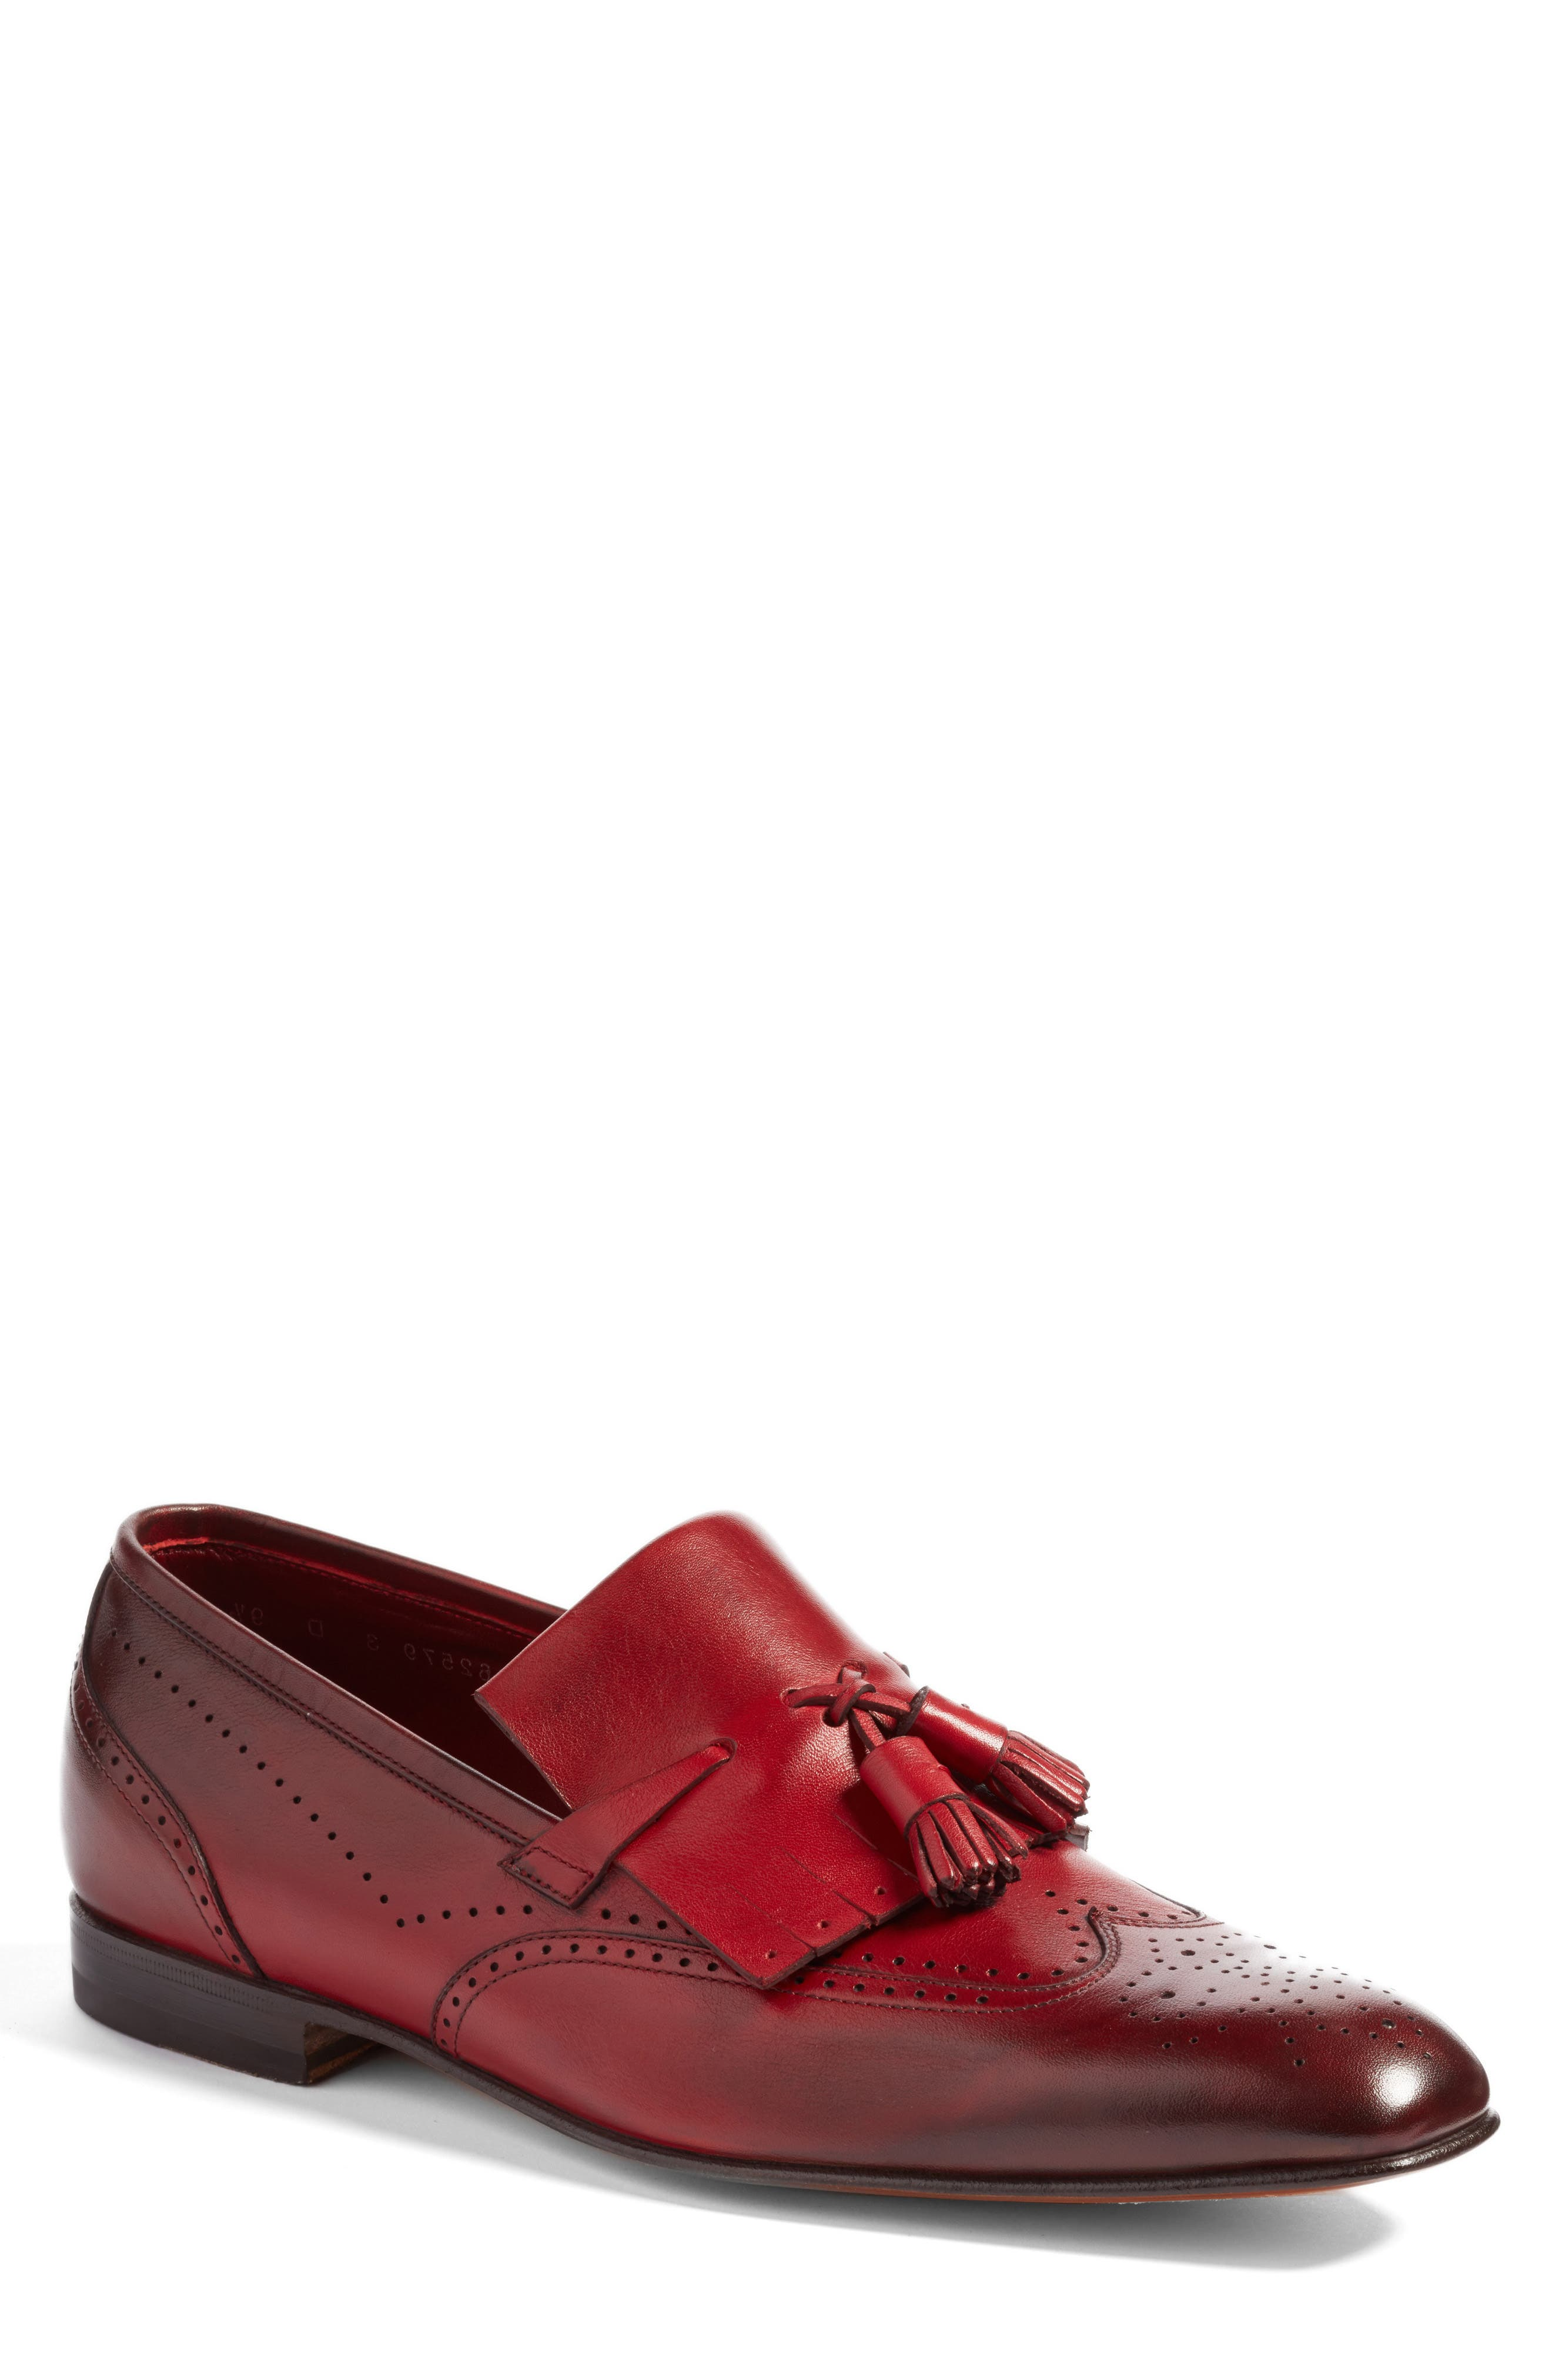 Floyd Tassel Wingtip Loafer,                         Main,                         color, 930